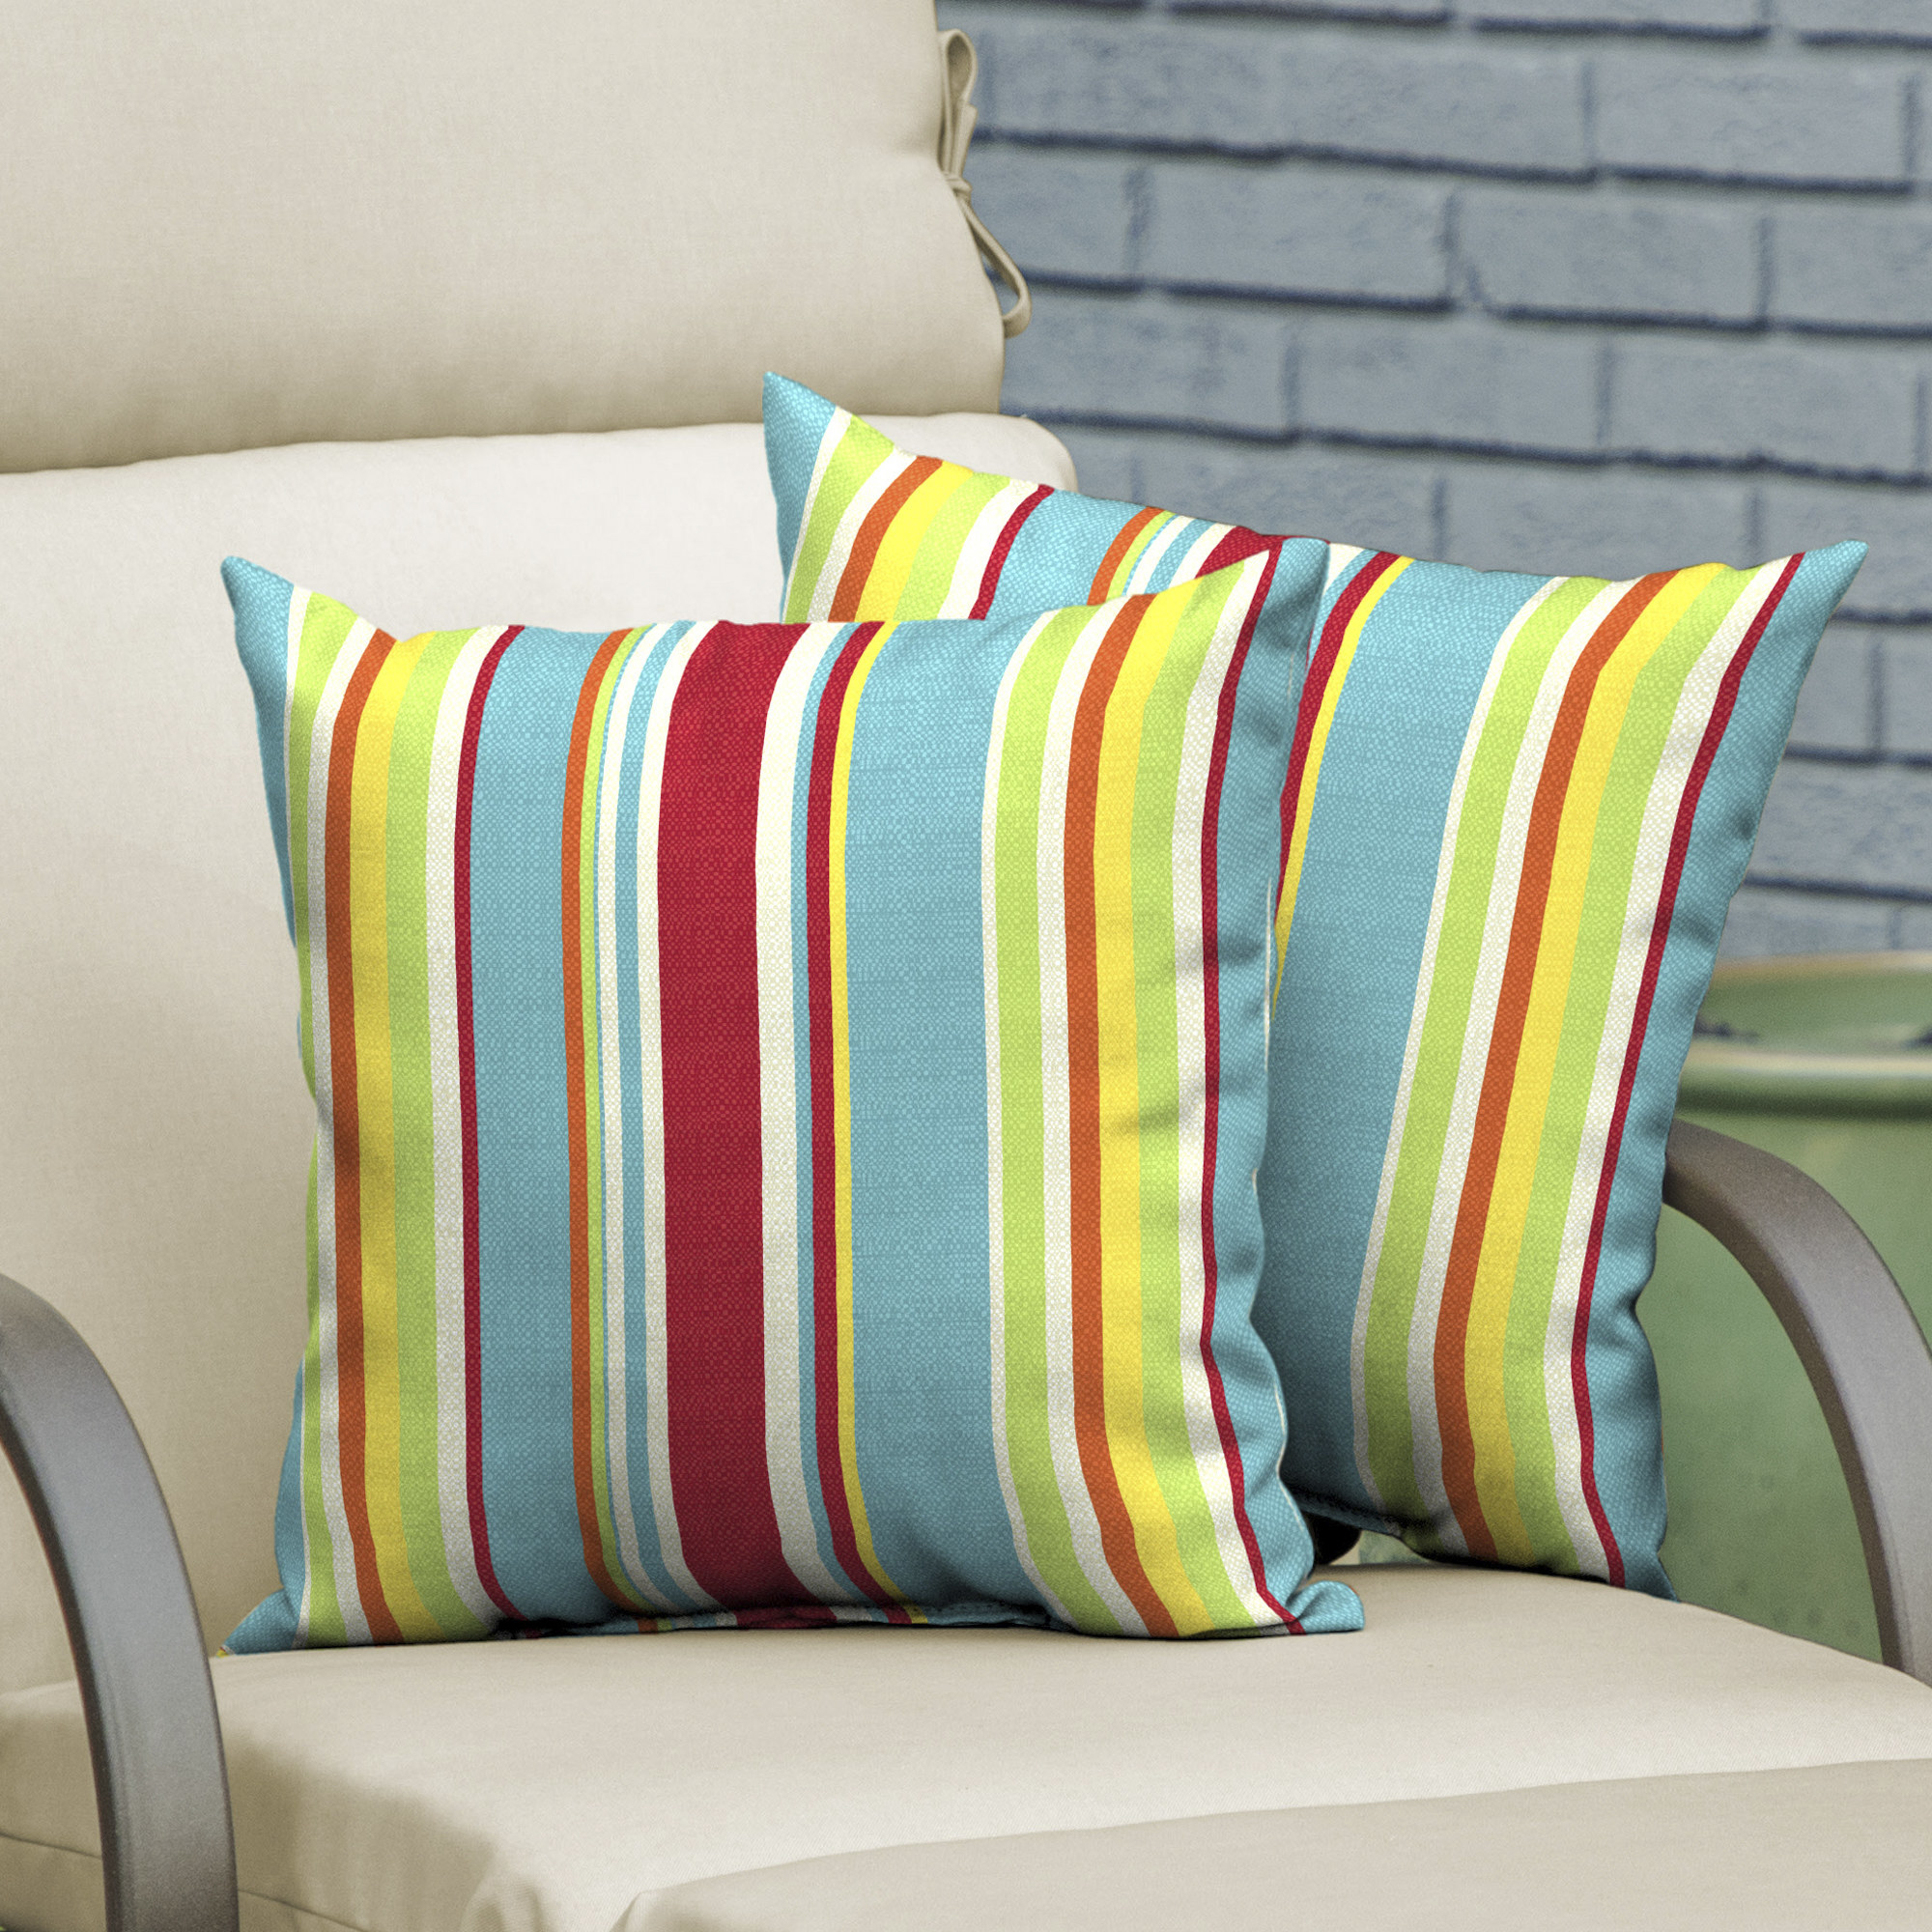 A brightly-colored set of striped outdoor pillows